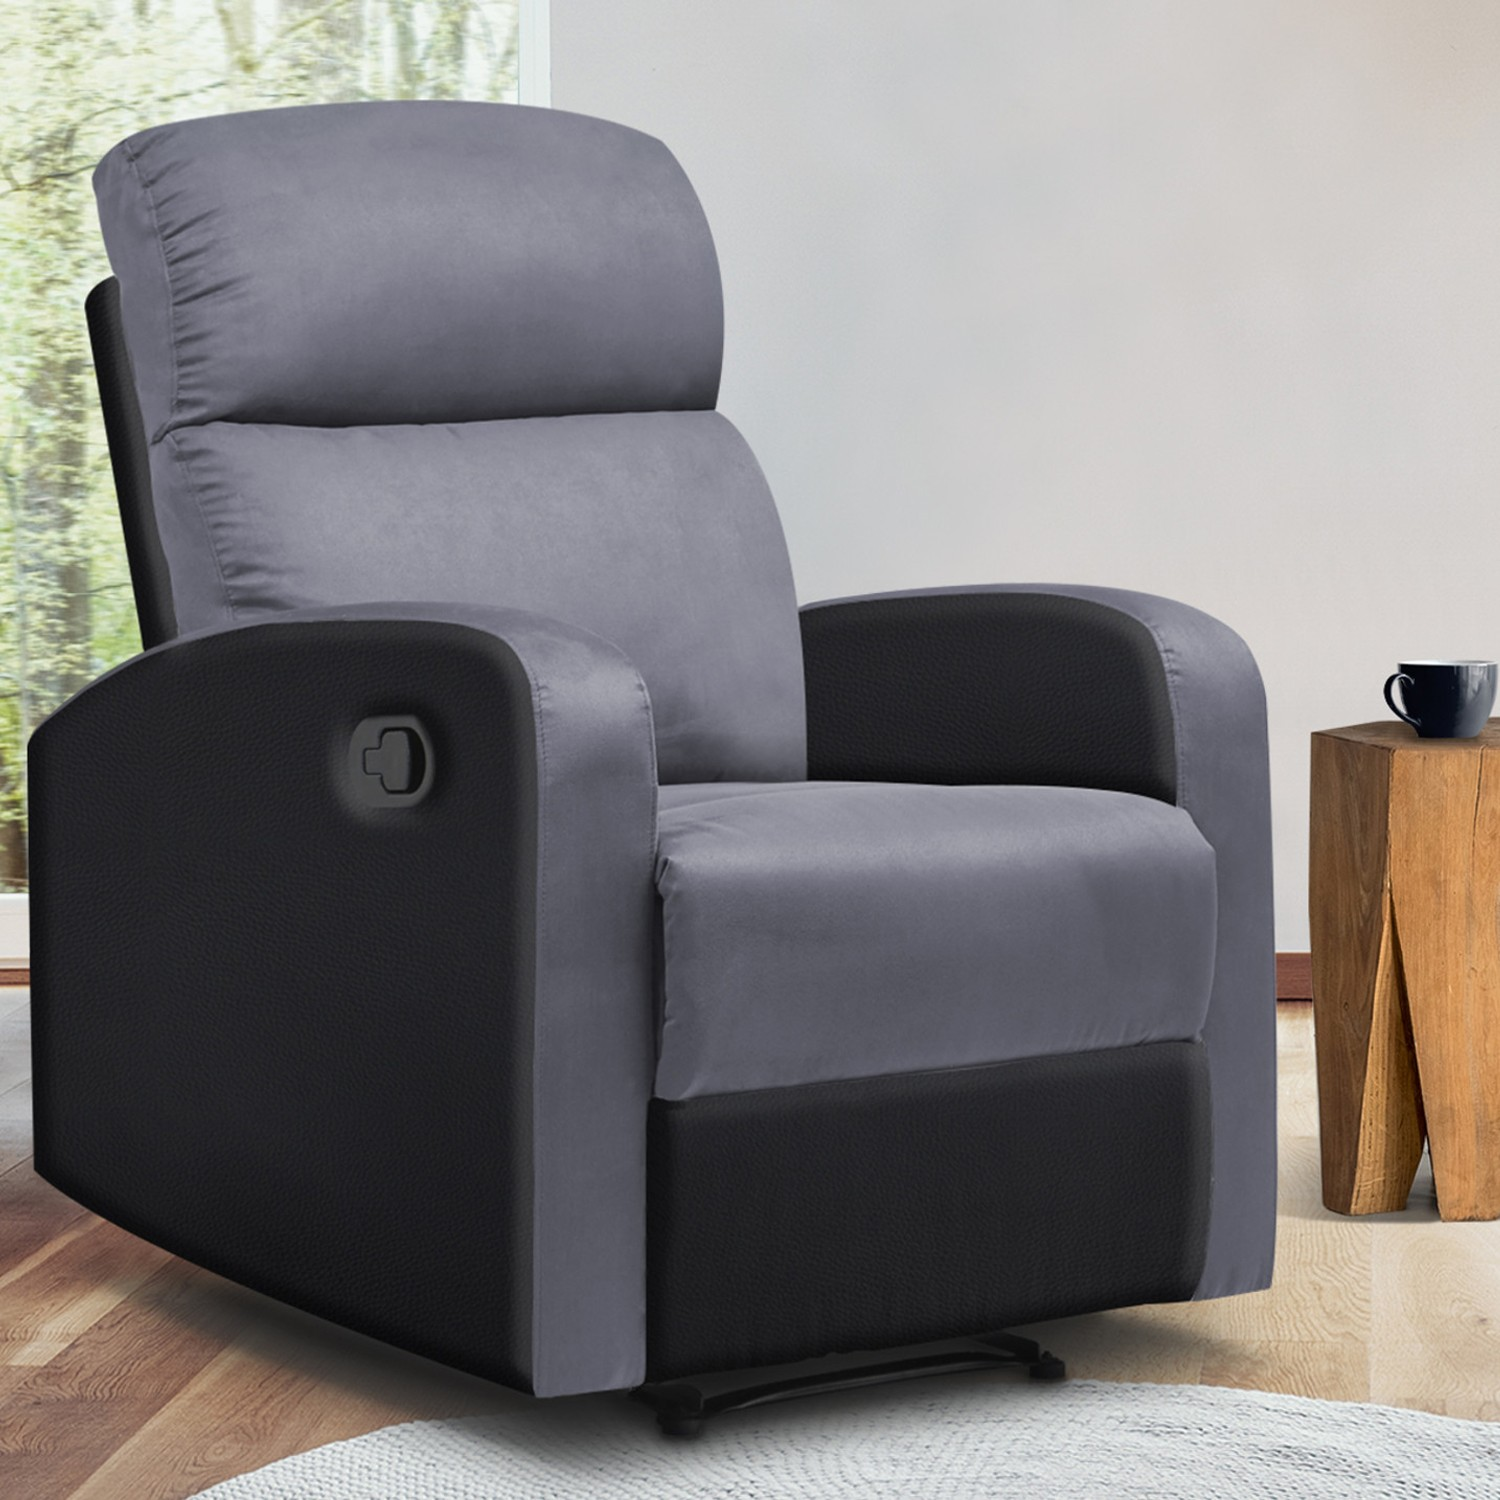 Fauteuil Relax Jaune Moutarde fauteuil relaxation inclinable noir et gris anthracite idmarket